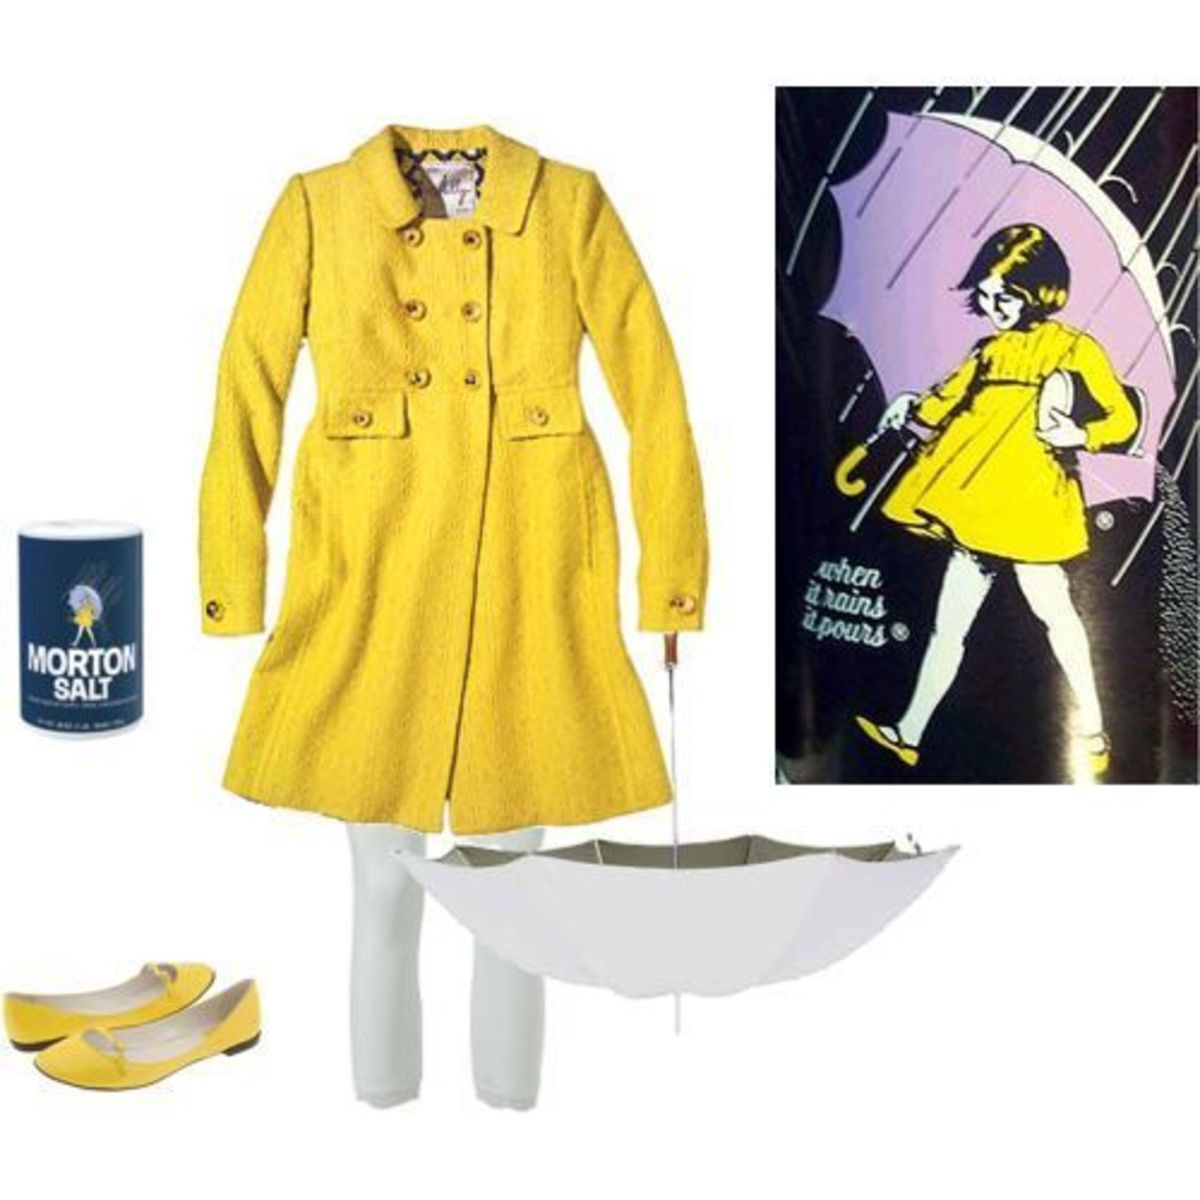 The Morton Salt Girl